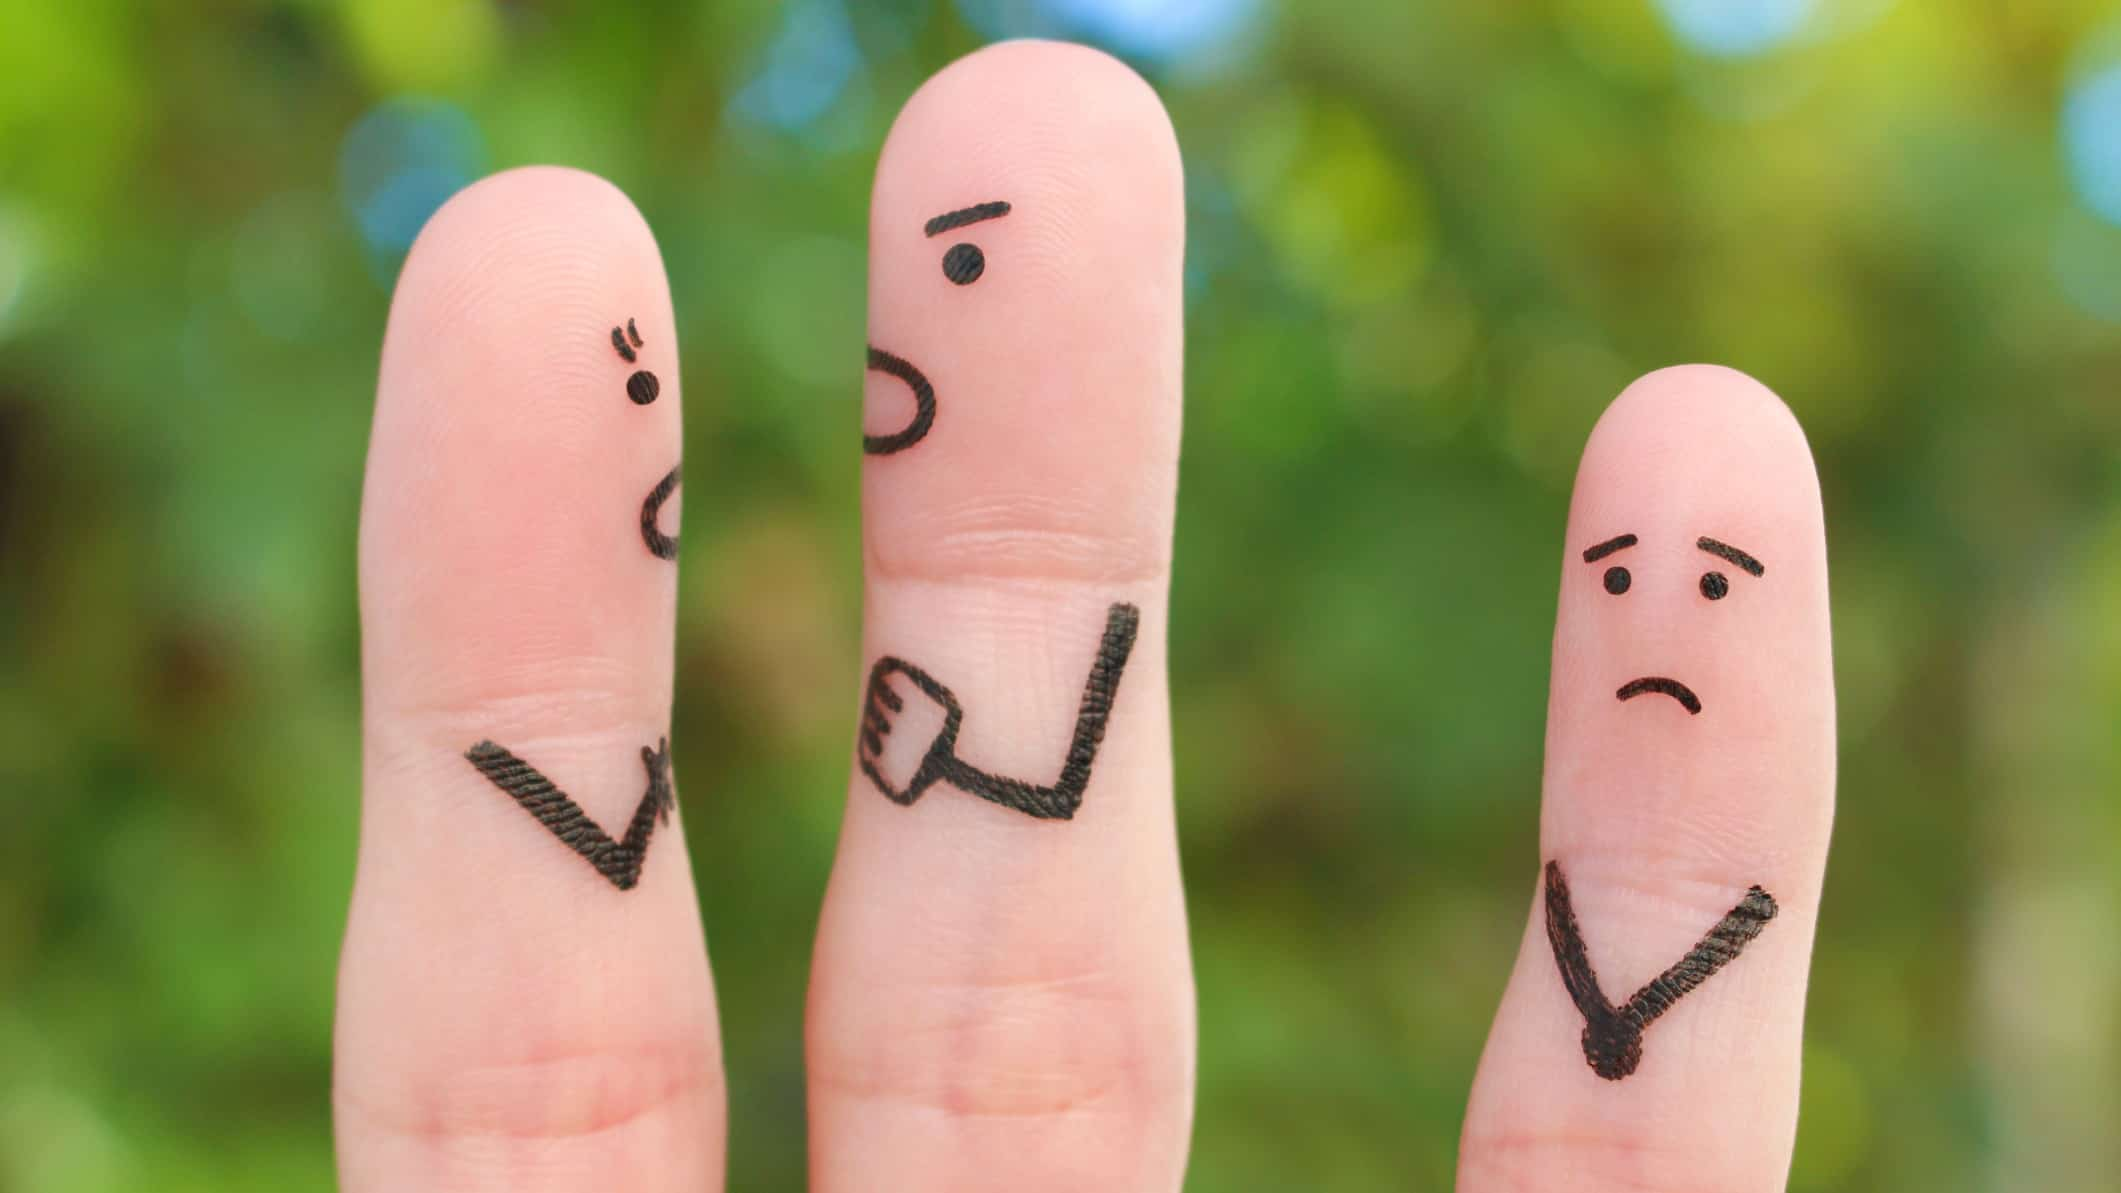 asx 200 shares downgraded represented by three fingers with sad and angry faces